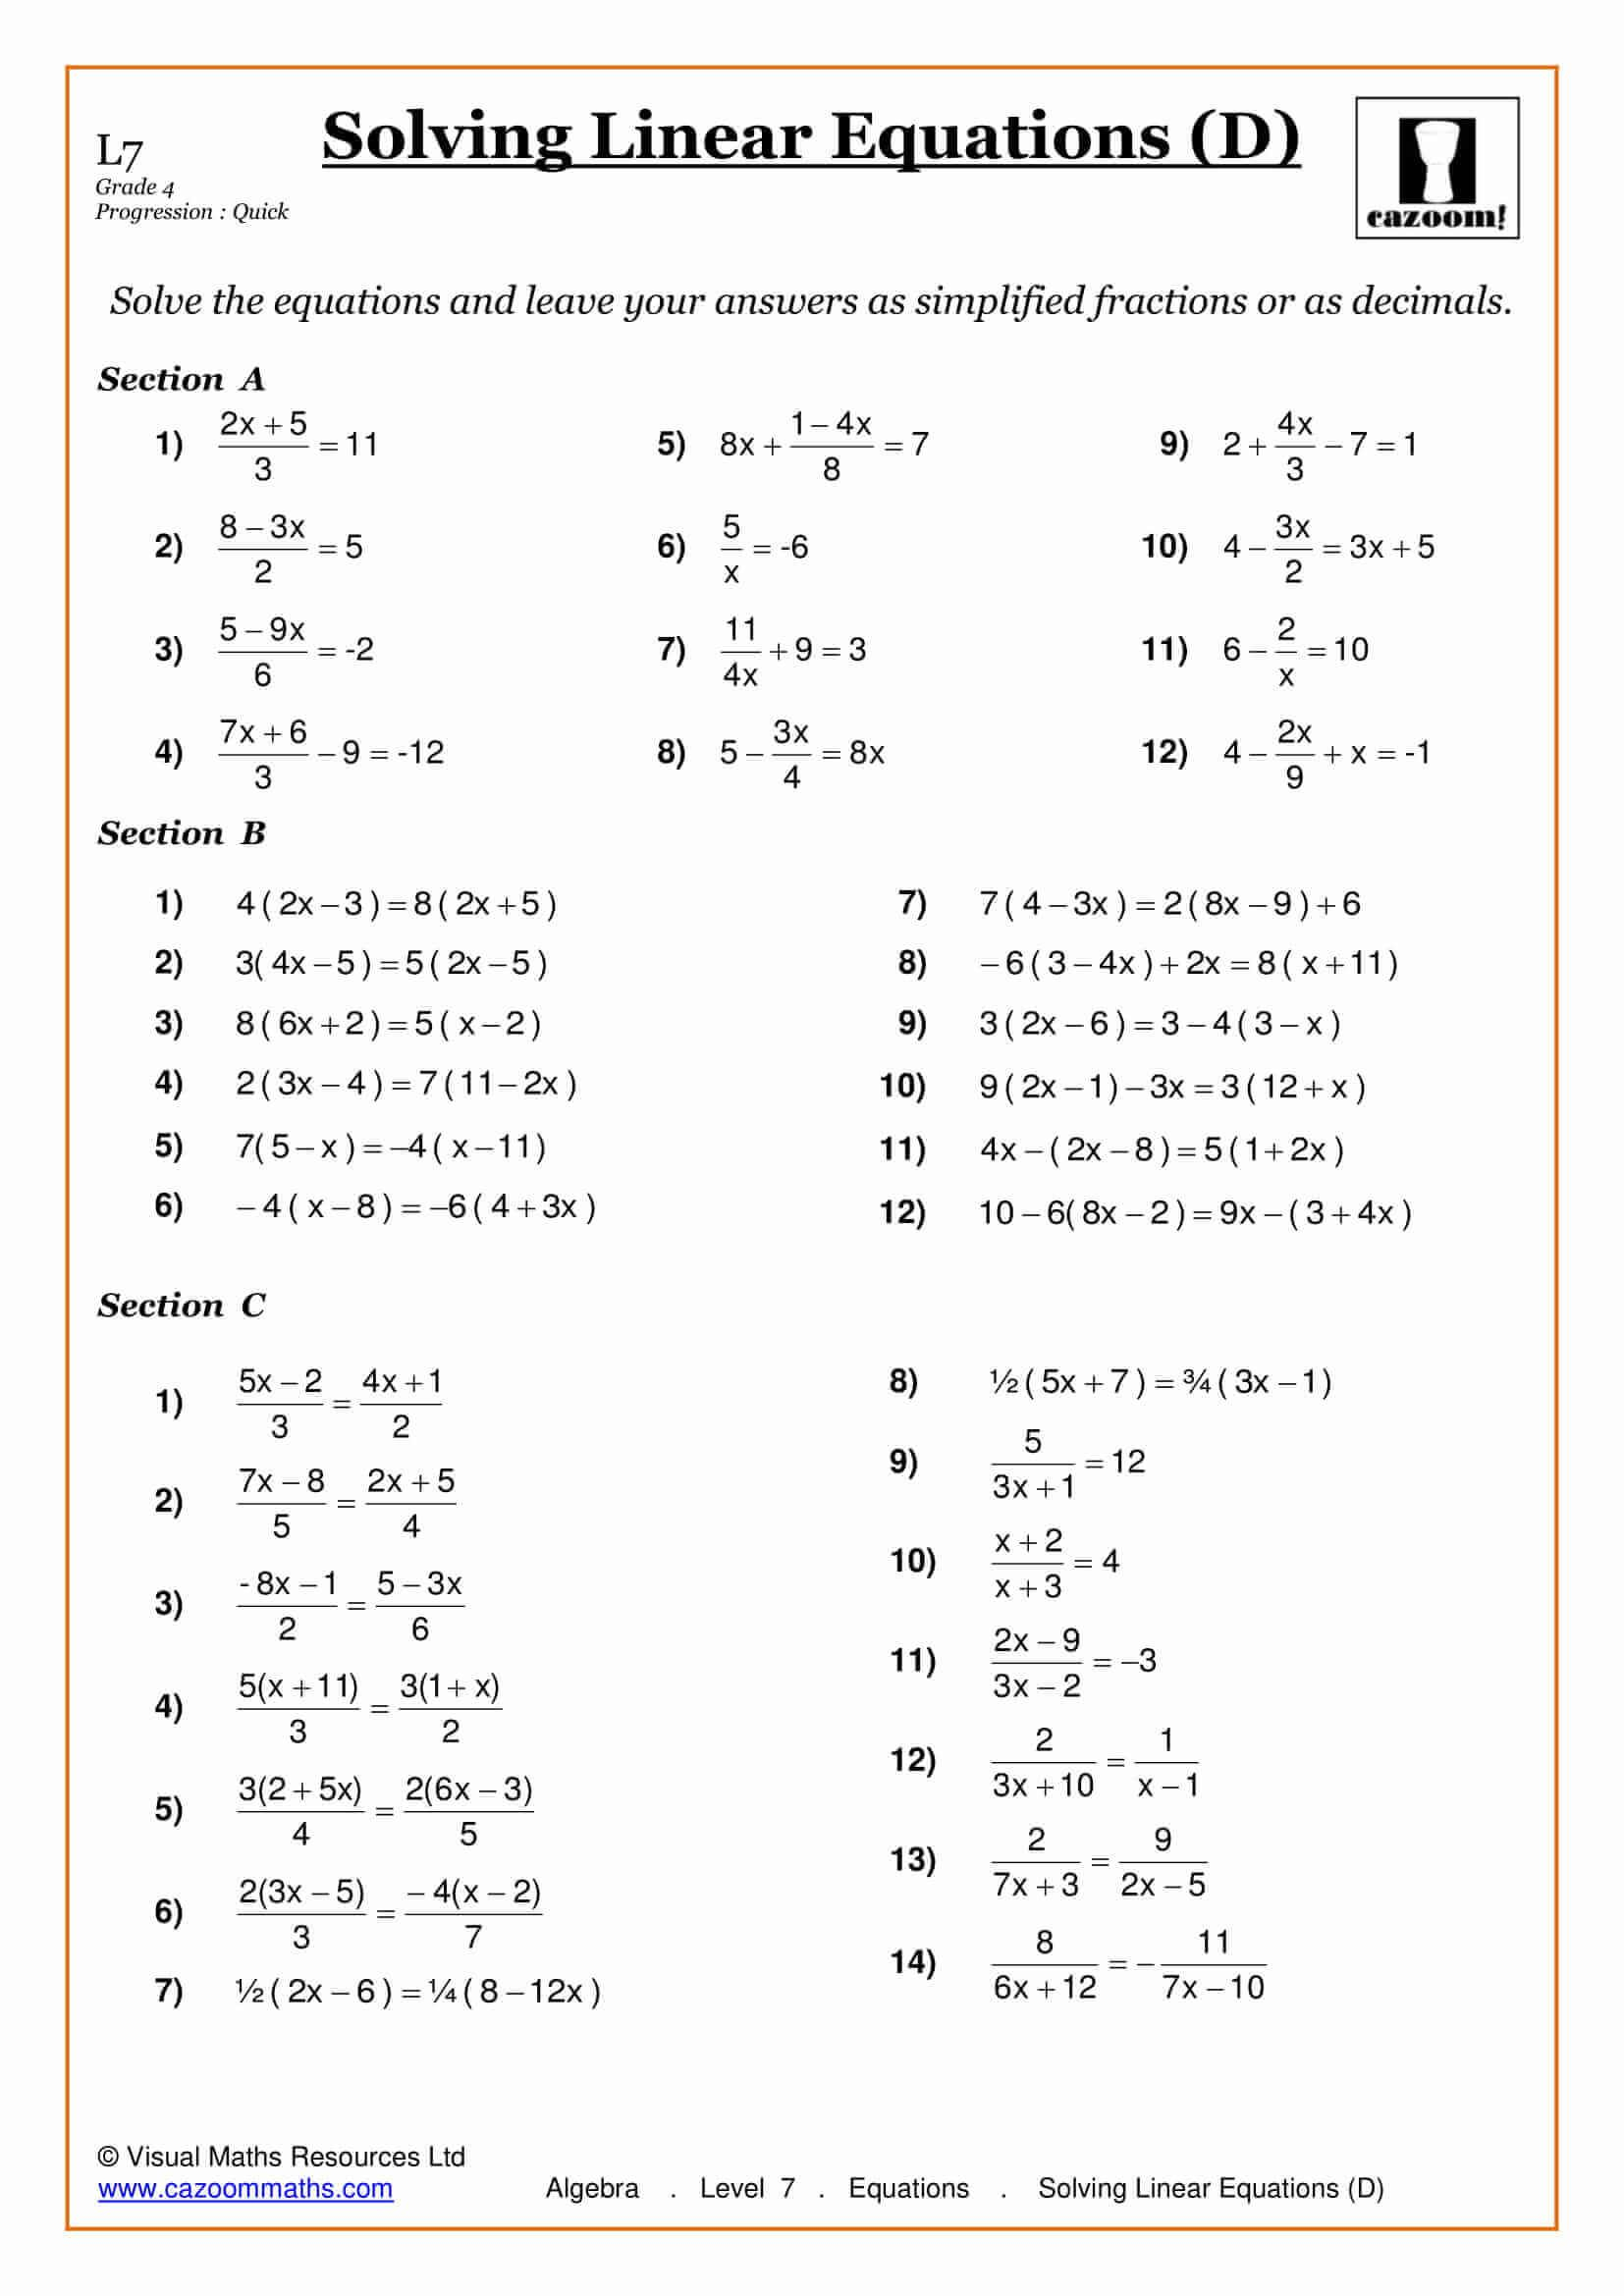 10th Grade Algebra Worksheets And Answers | Algebra ...